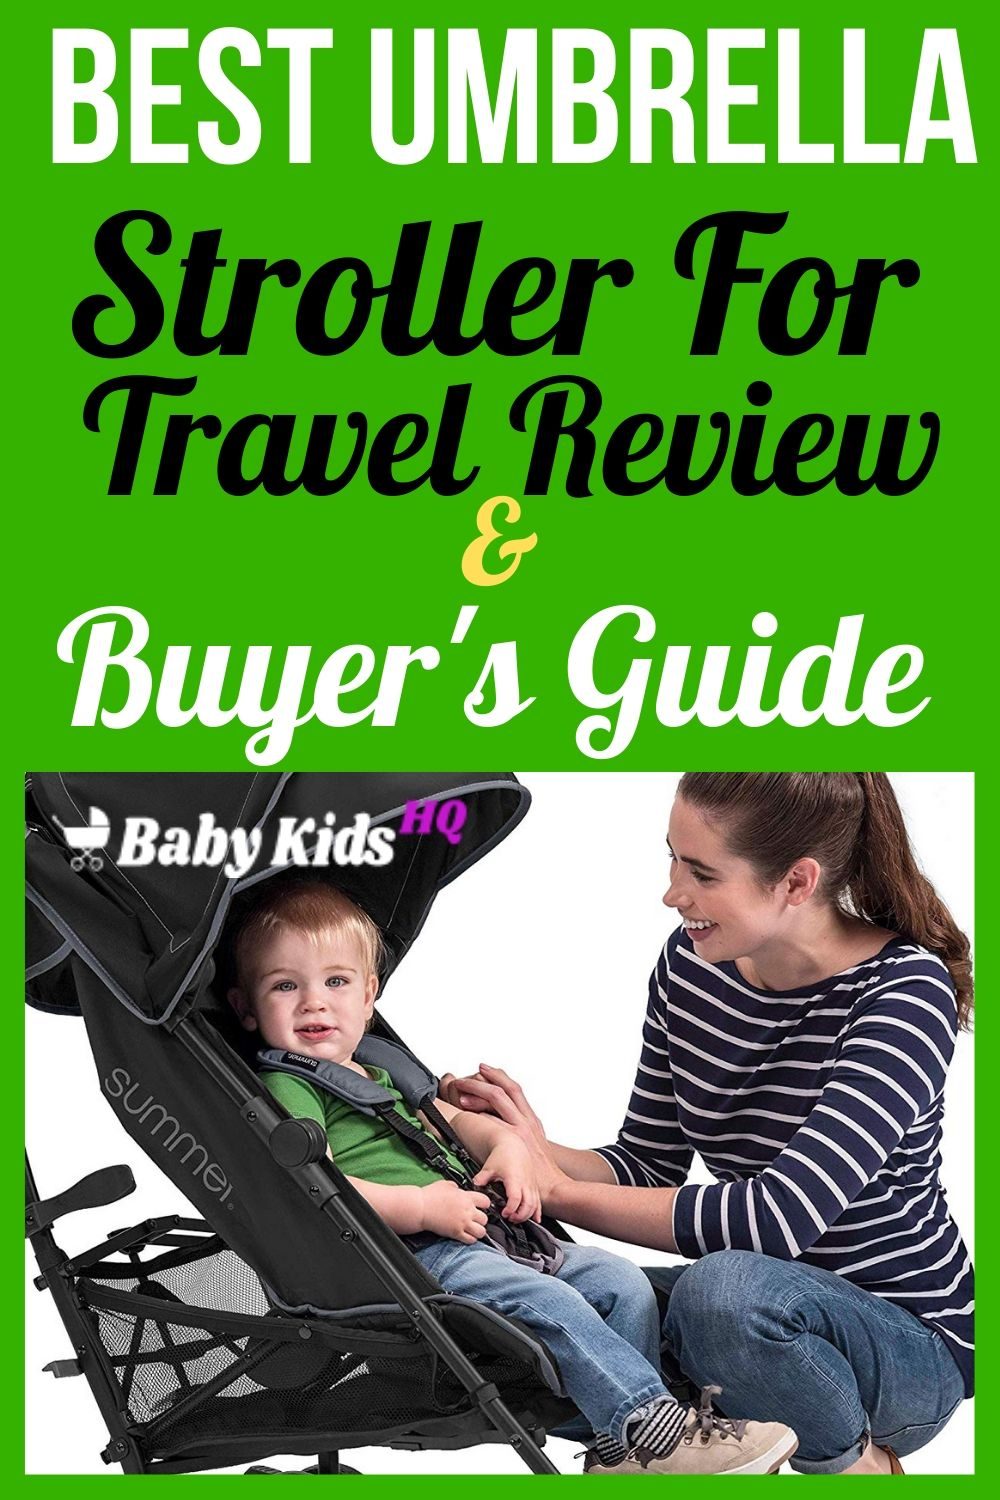 Best Umbrella Stroller For Travel Review And Buyer's Guide.